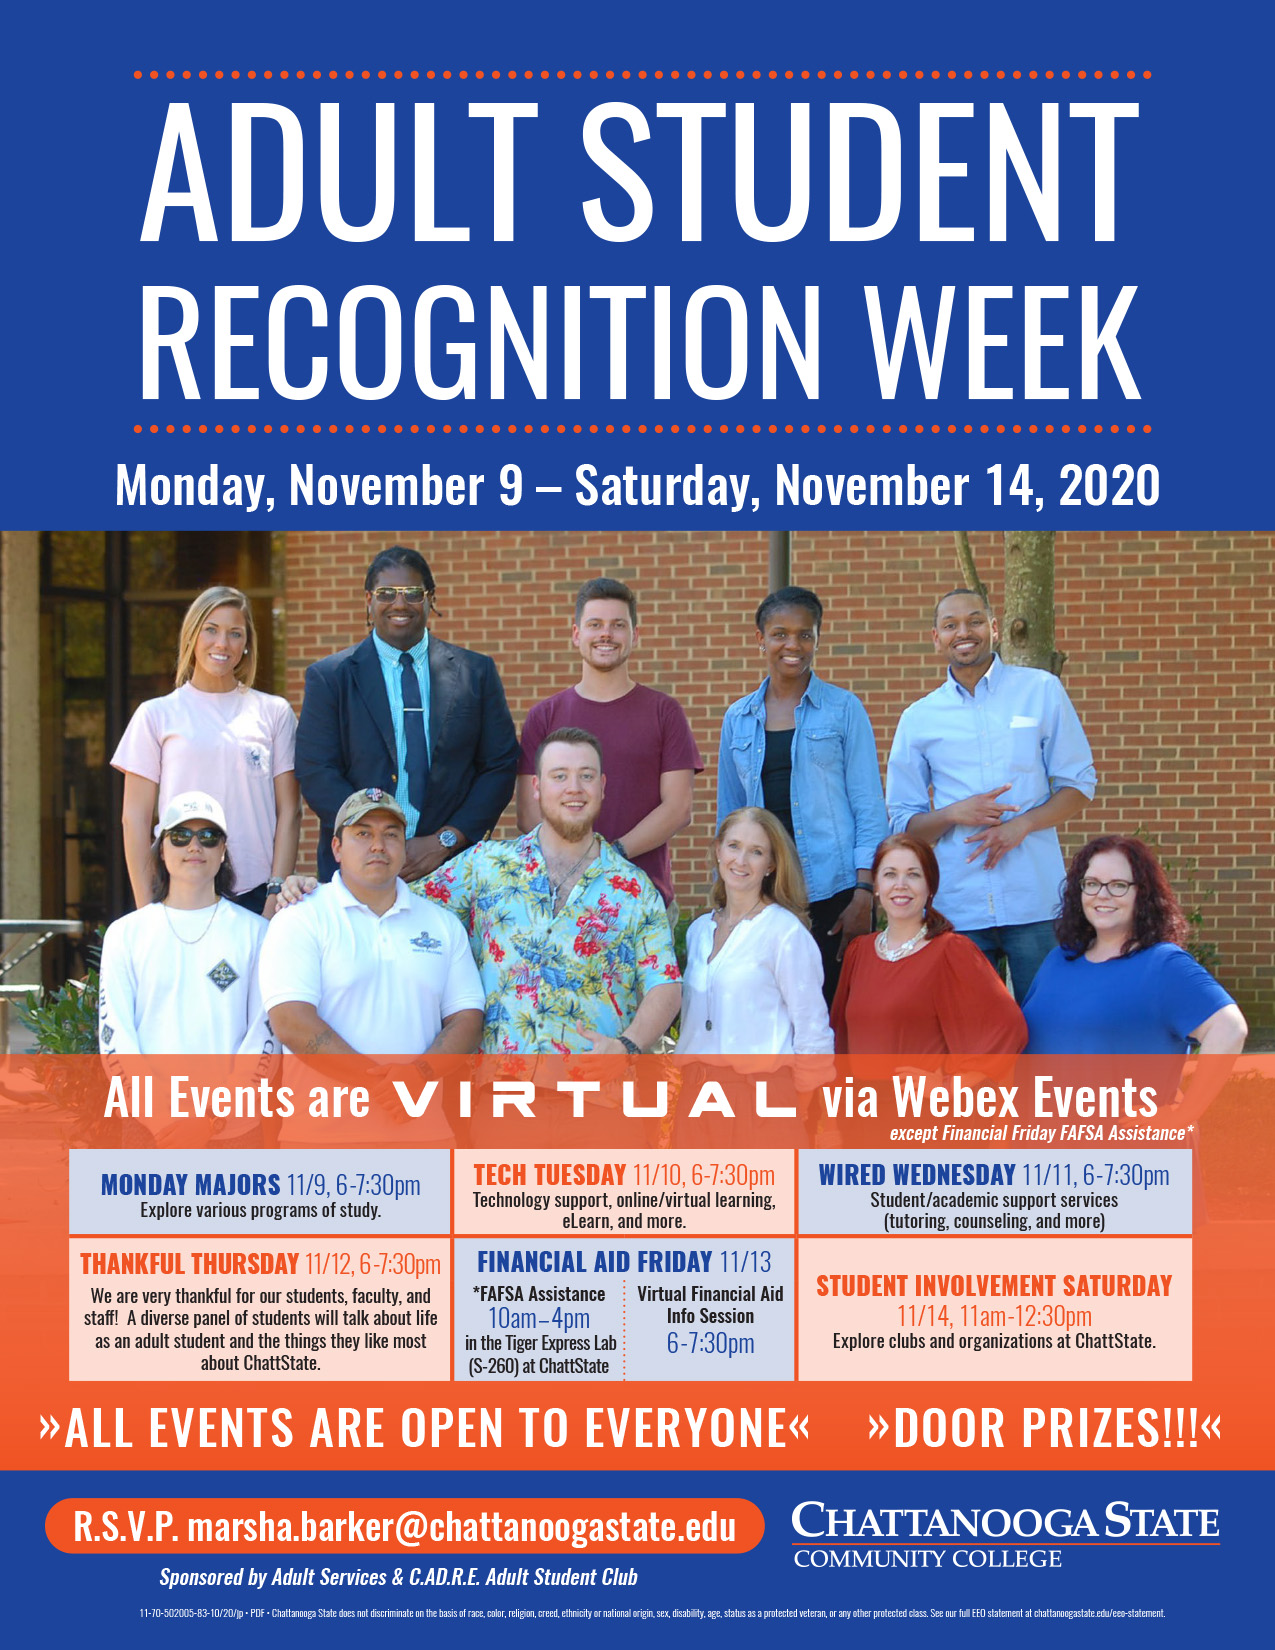 2020 Adult Student Recognition Week